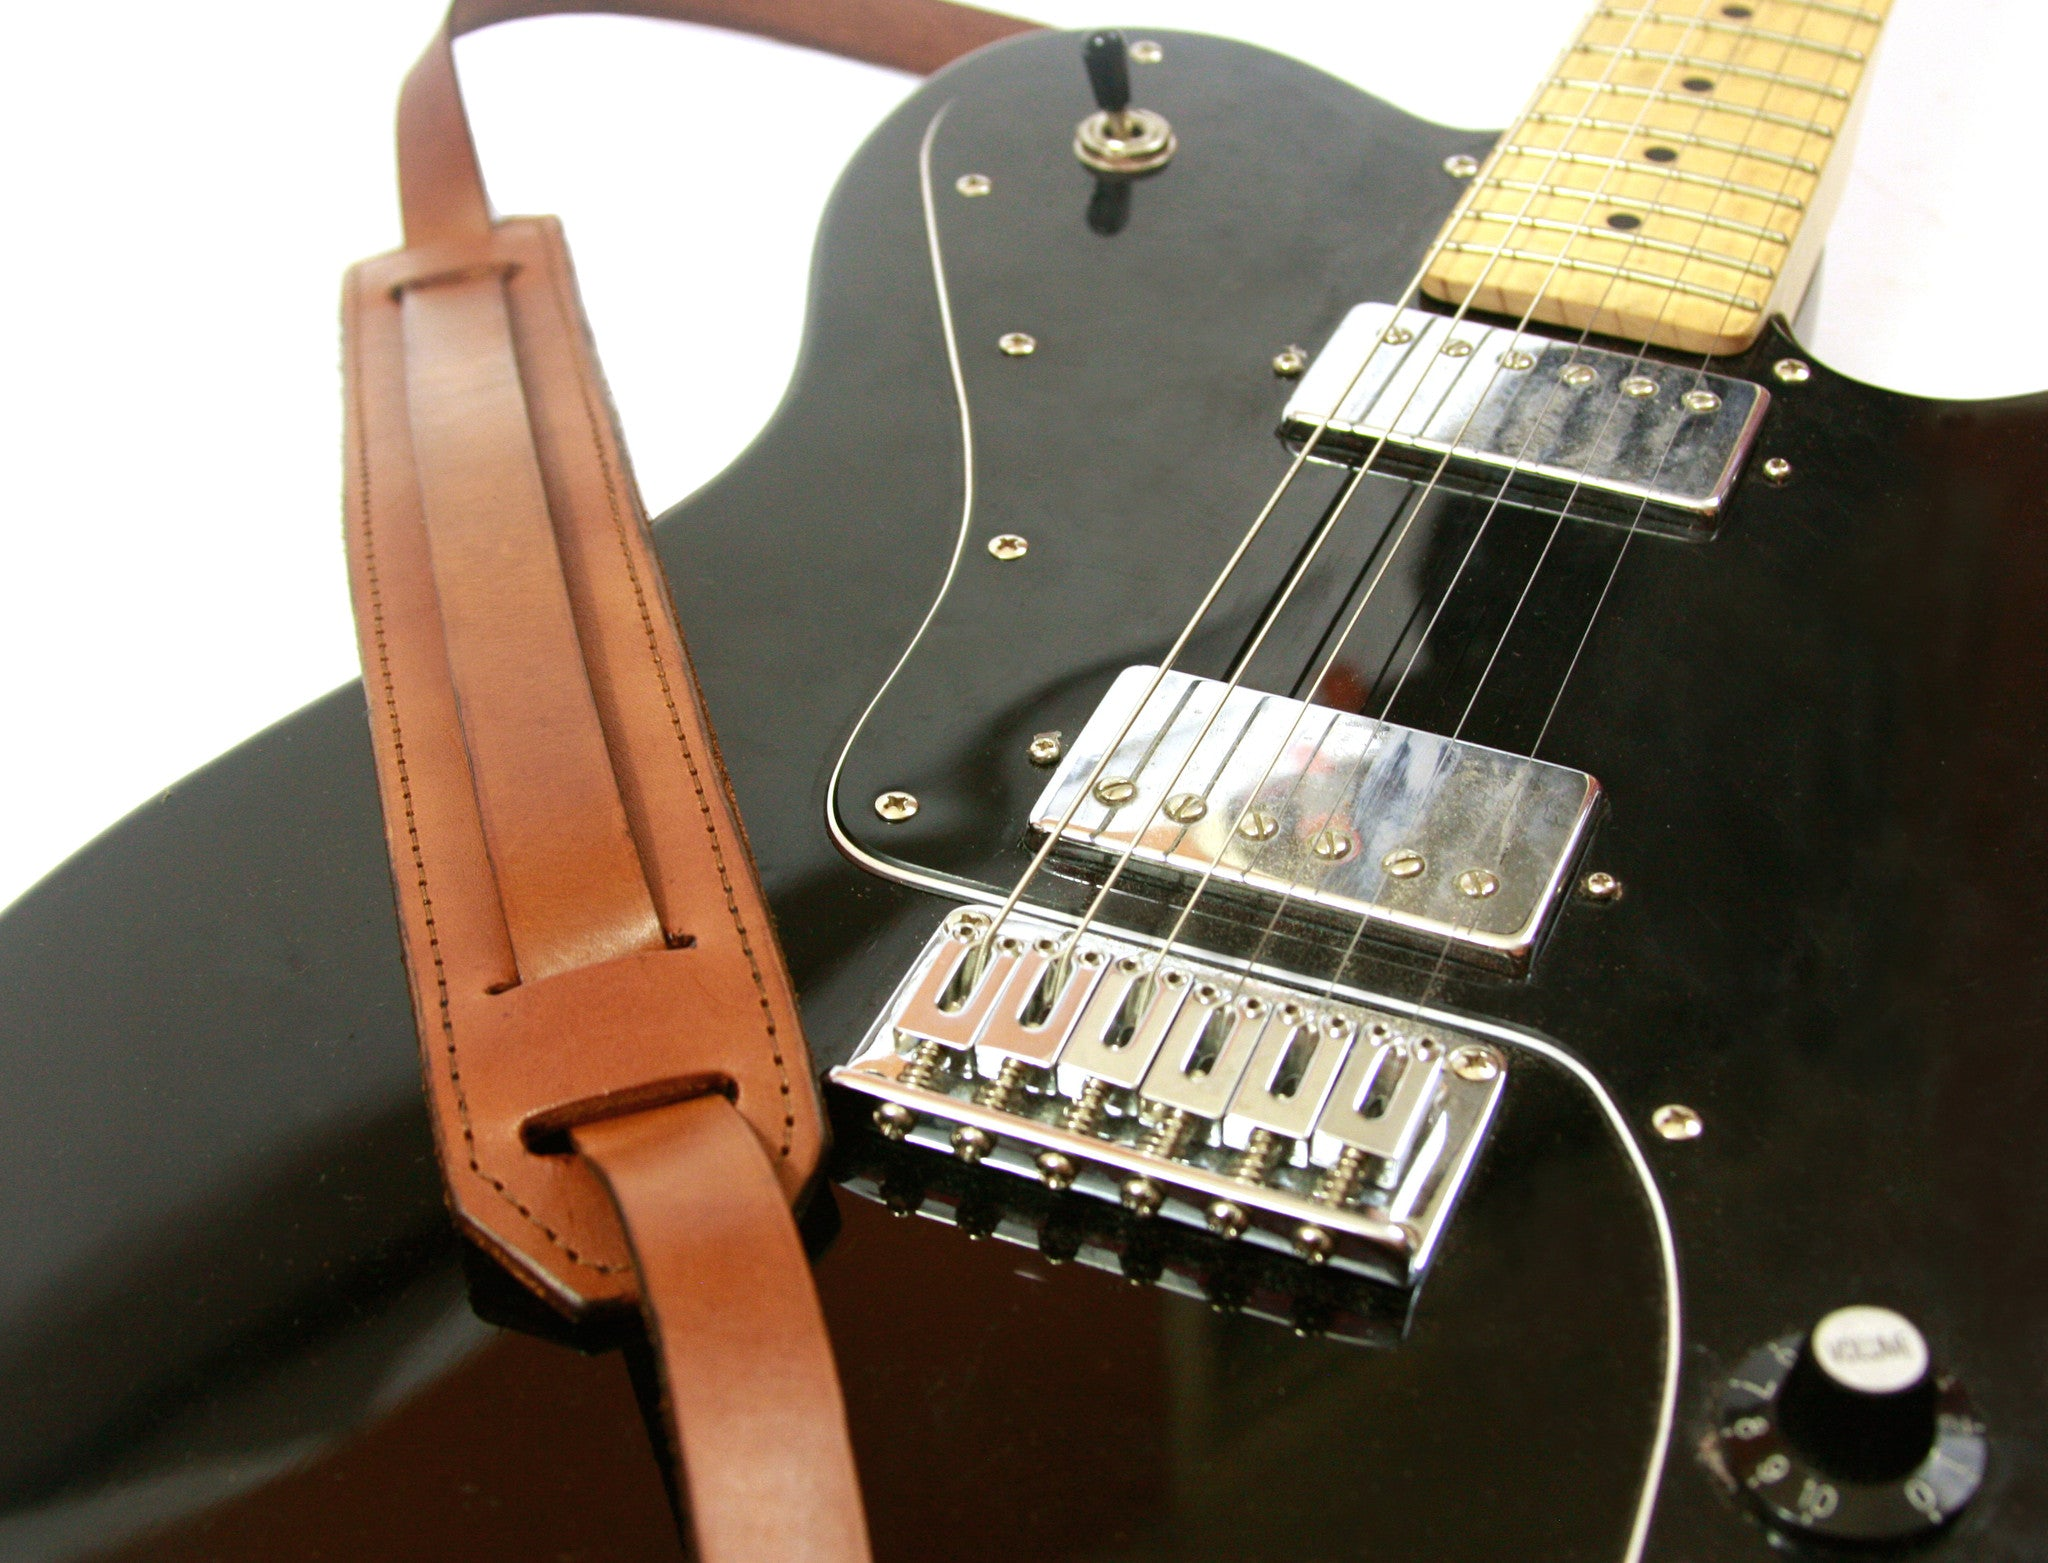 Old guitar strap, vintage guitar strap, classic guitar strap, leather guitar strap, leather strap, inspired by the early days of Rock 'n' Roll, this classic style of leather guitar strap was worn by the likes of Chuck Berry, Elvis Presley, and The Beatles. It's still used today by many of our favorite musicians on both acoustic and electric guitars.